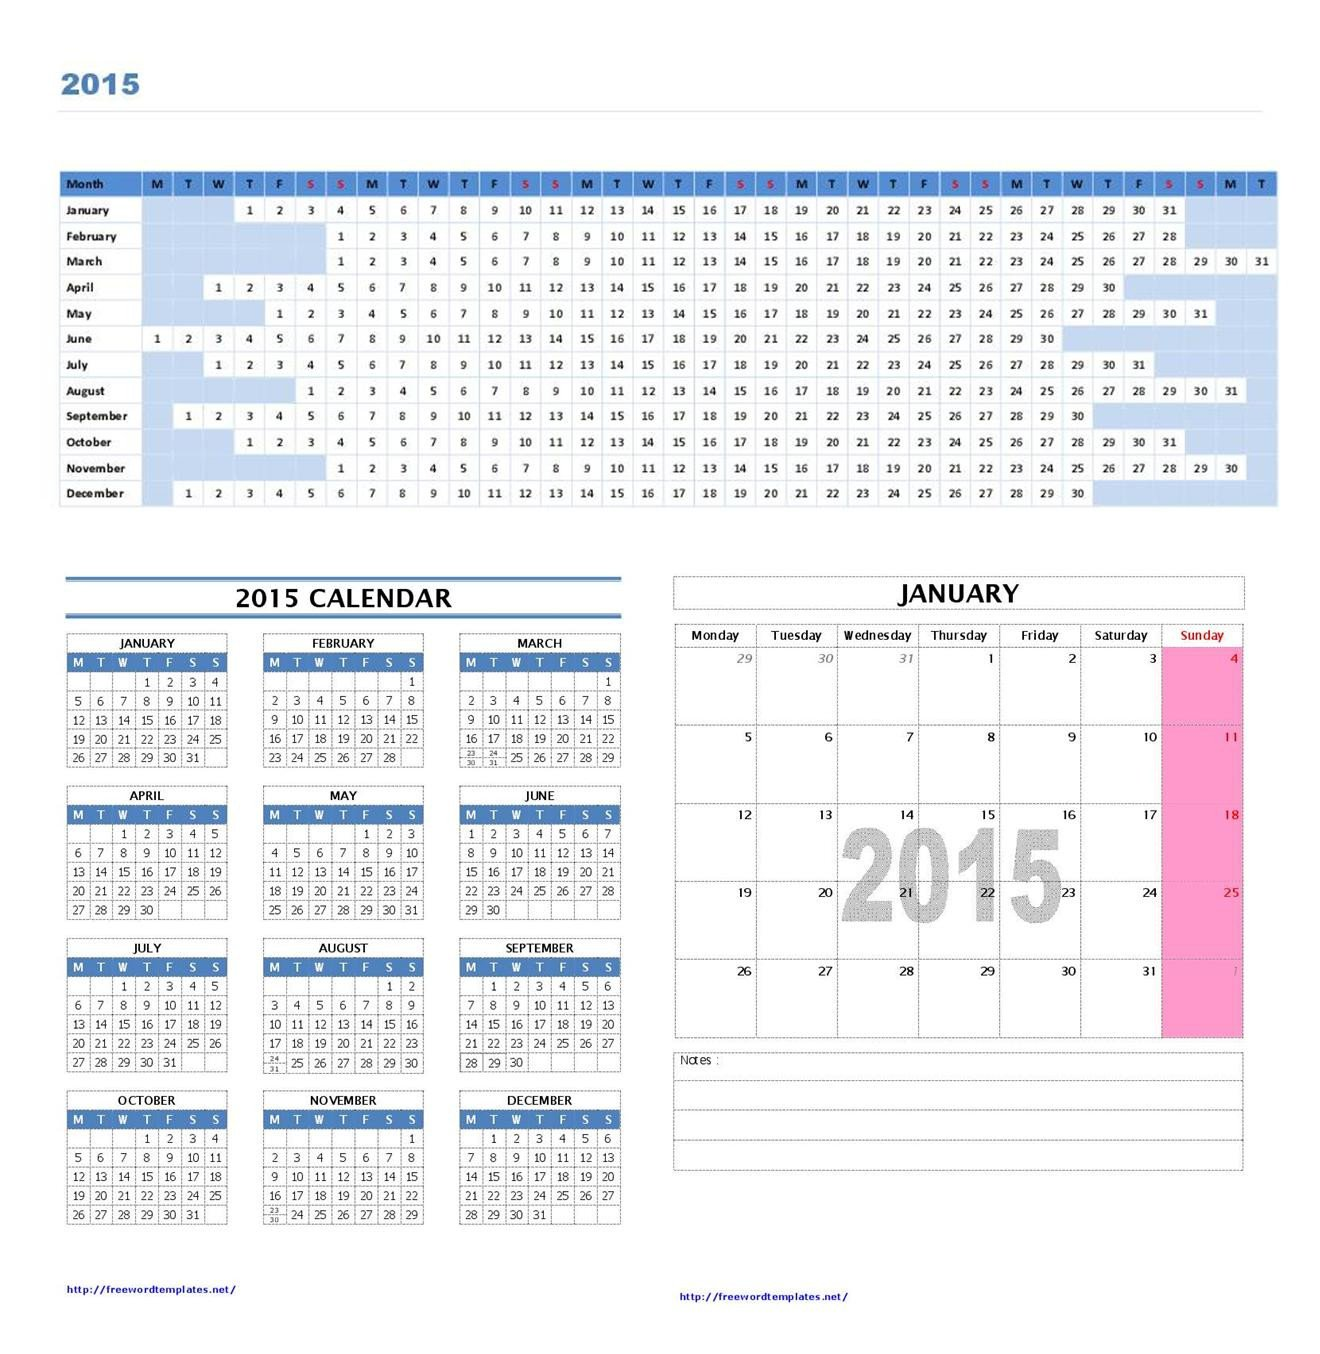 Calendar Template for Word 2015 Calendar Templates